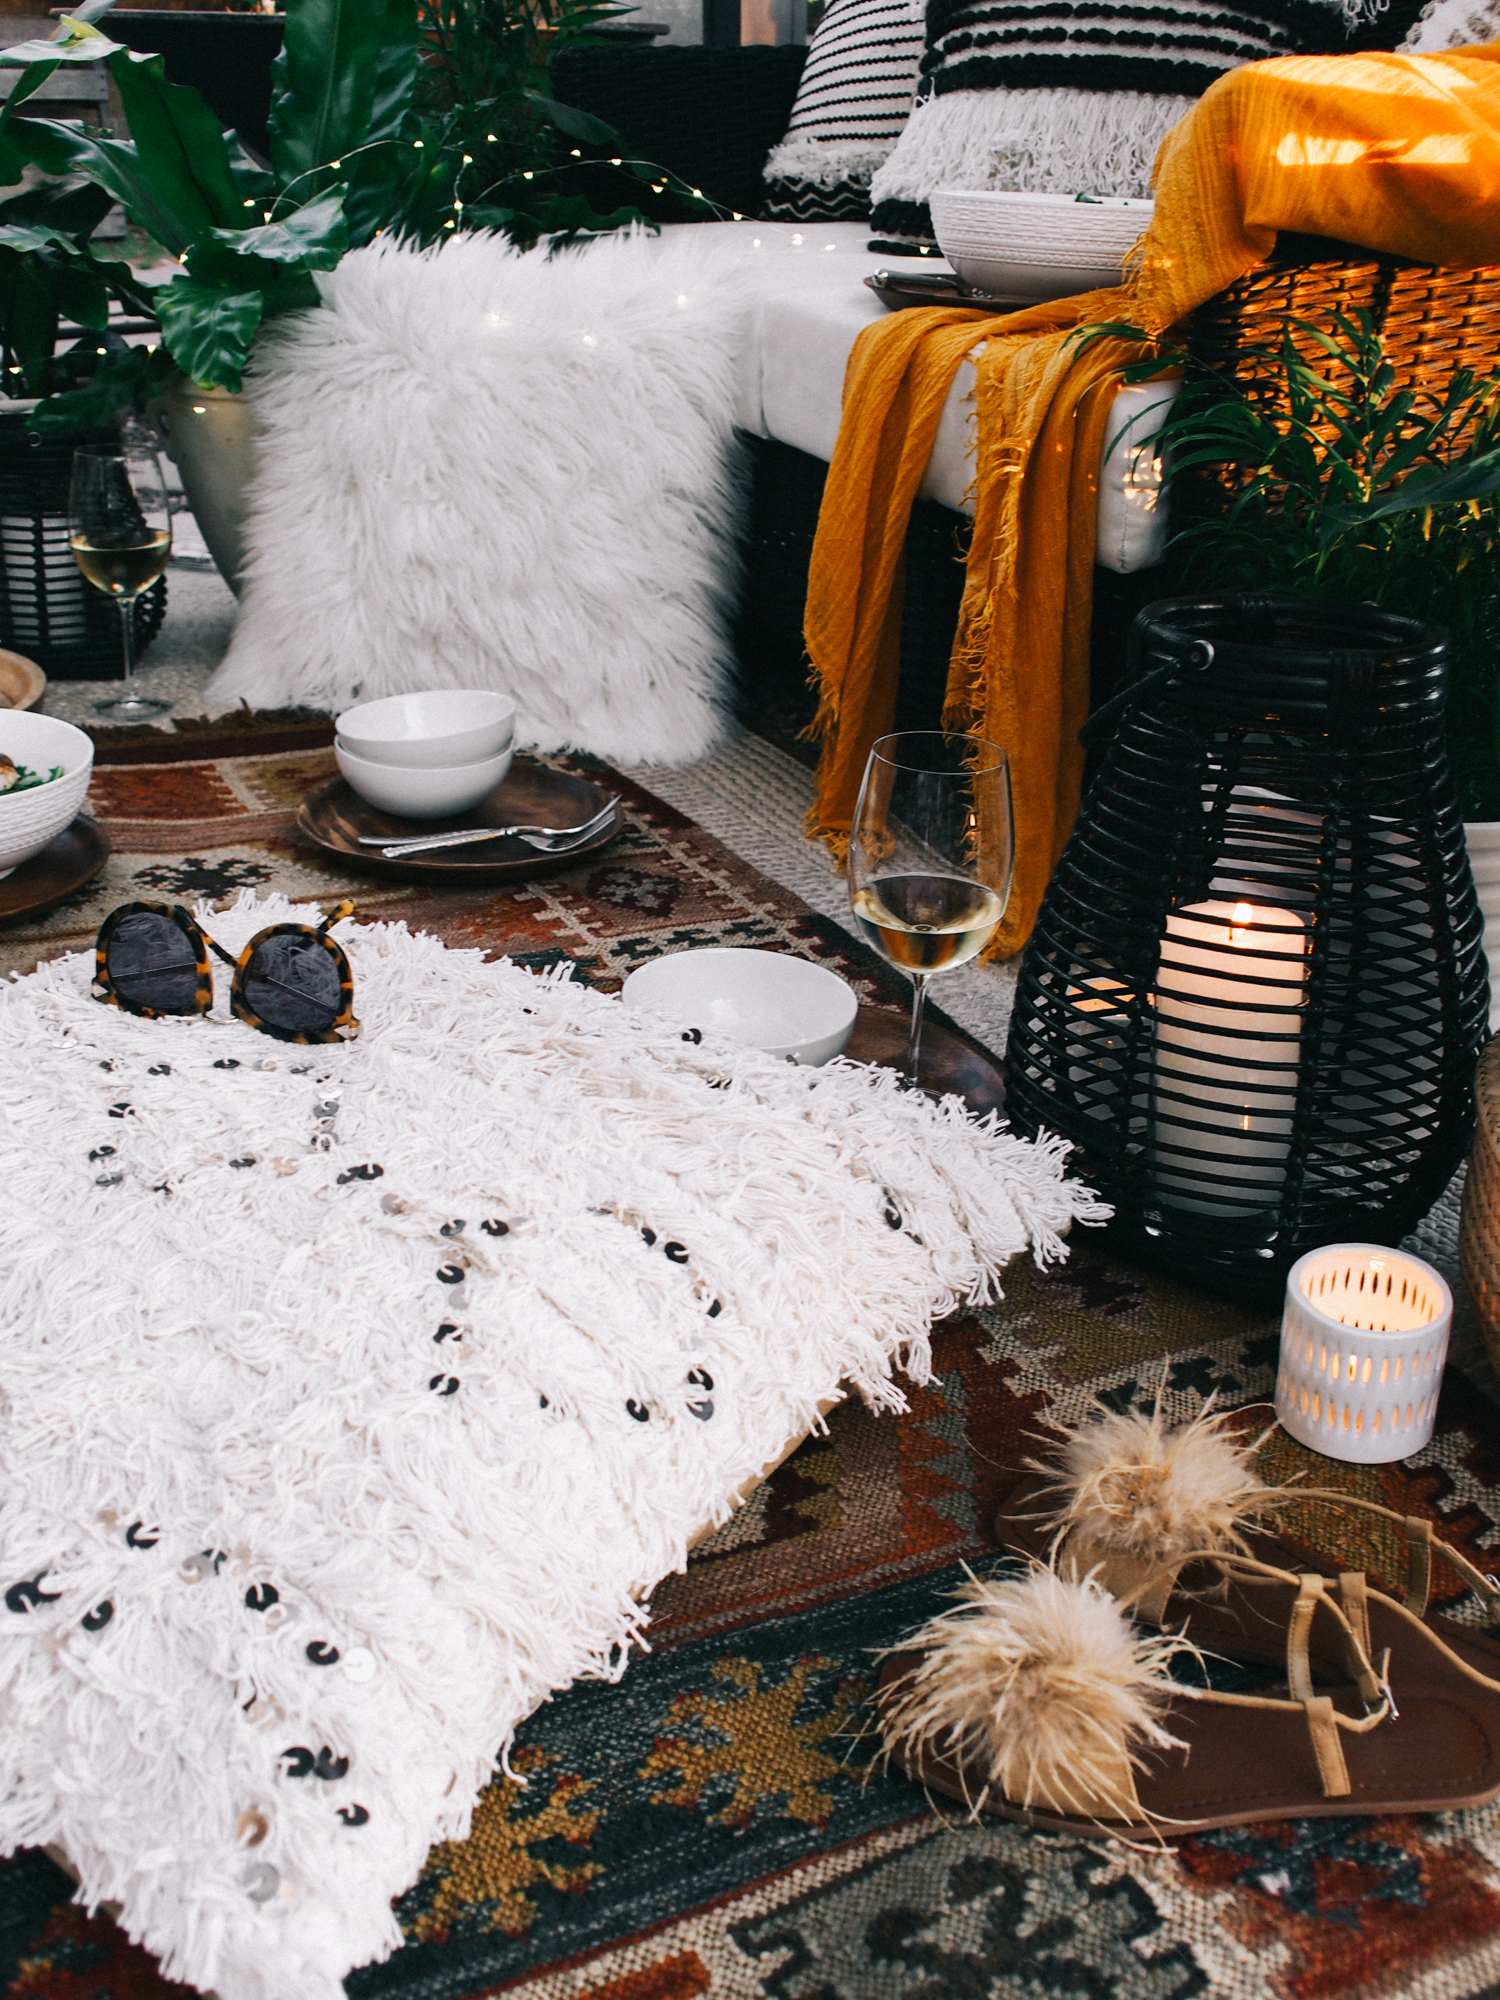 Spend your sunsets at home with friends with these easy decorating ideas | A Fabulous Fete